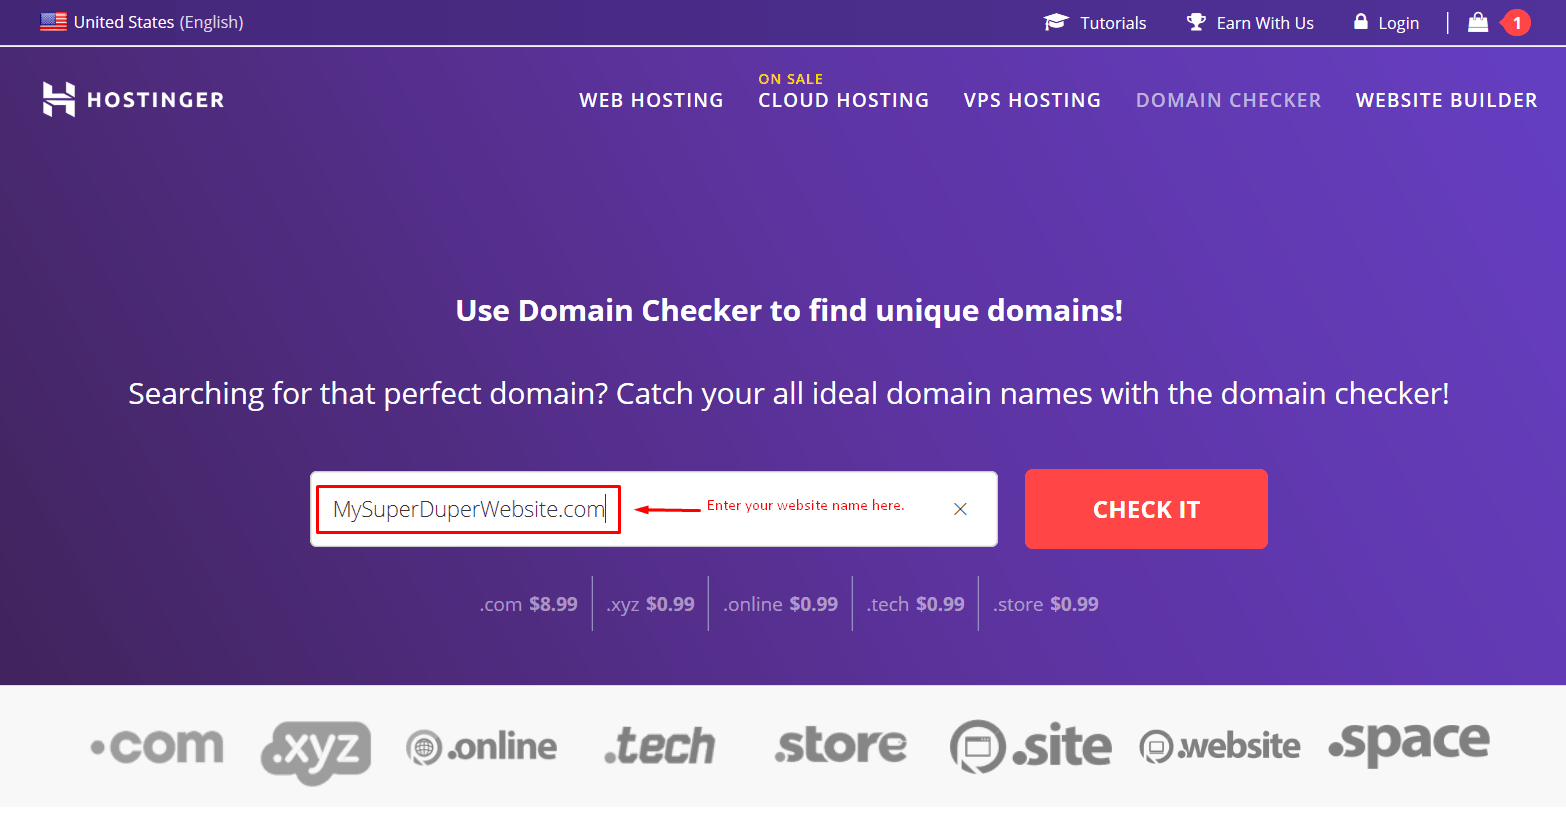 How to Connect a Domain and Install WordPress on Hostinger-image2